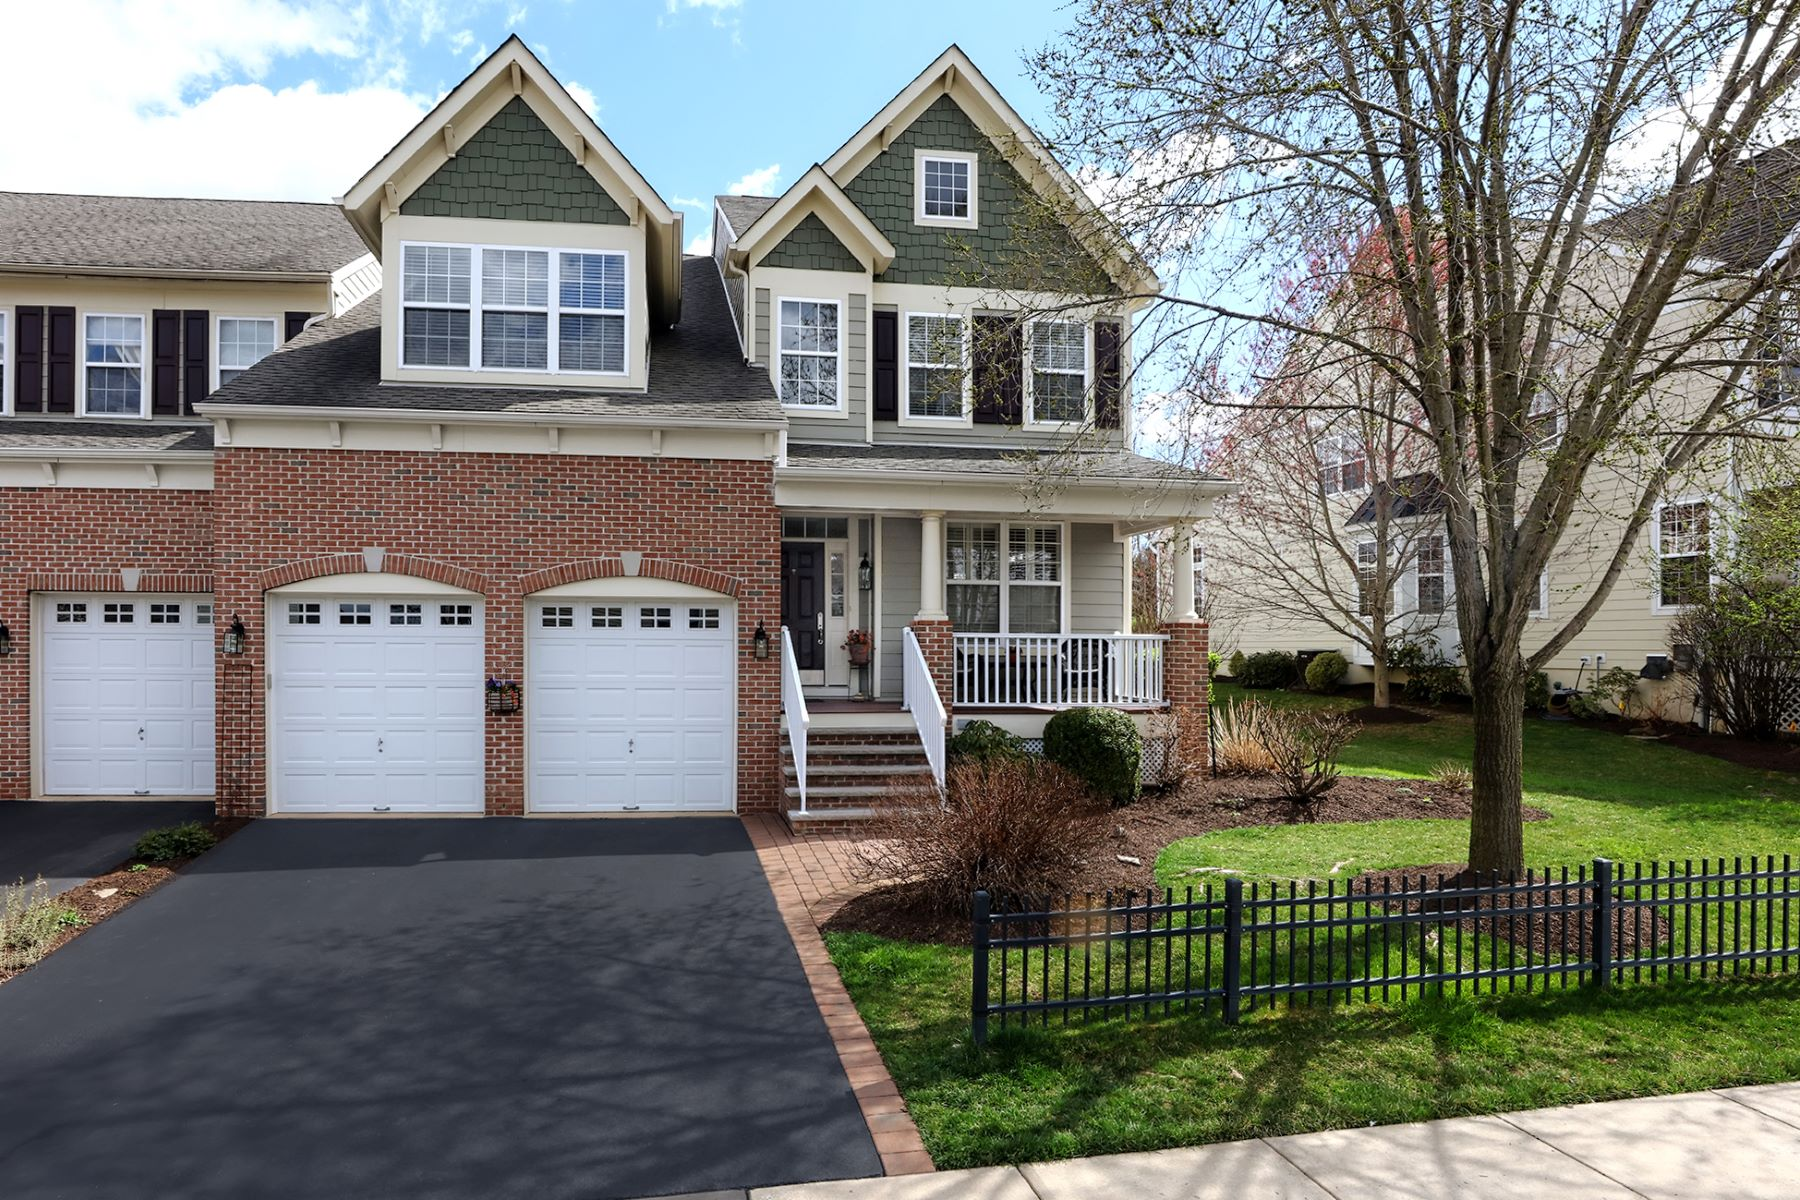 Townhouse for Sale at Live It Up In Lambert's Hill 242 Holcombe Way, Lambertville, New Jersey 08530 United StatesMunicipality: Lambertville